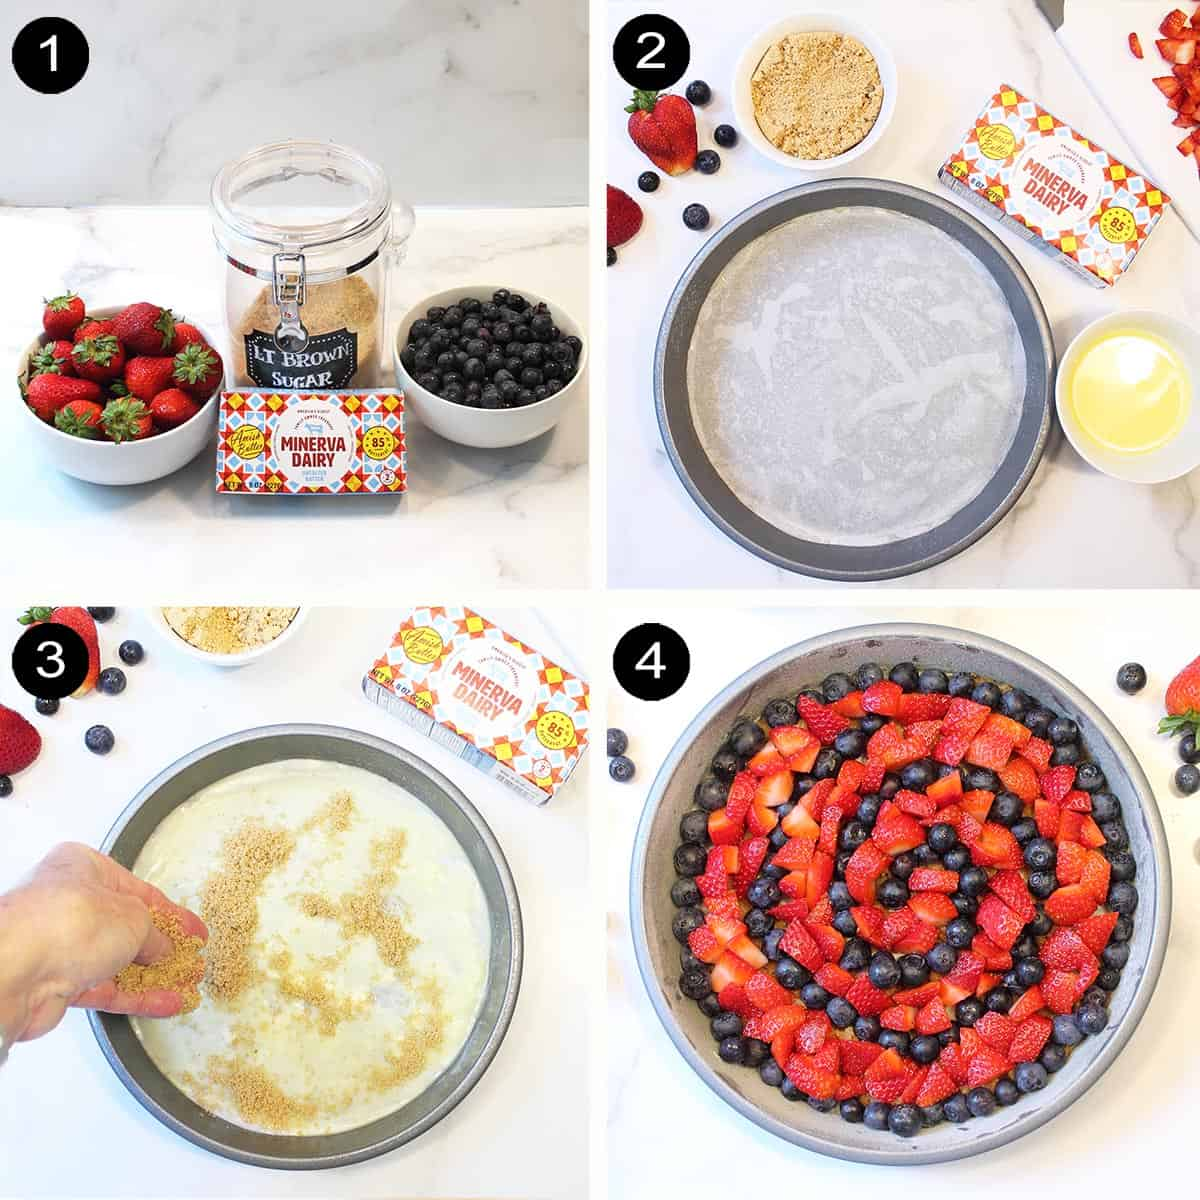 Steps to make fruit topping.